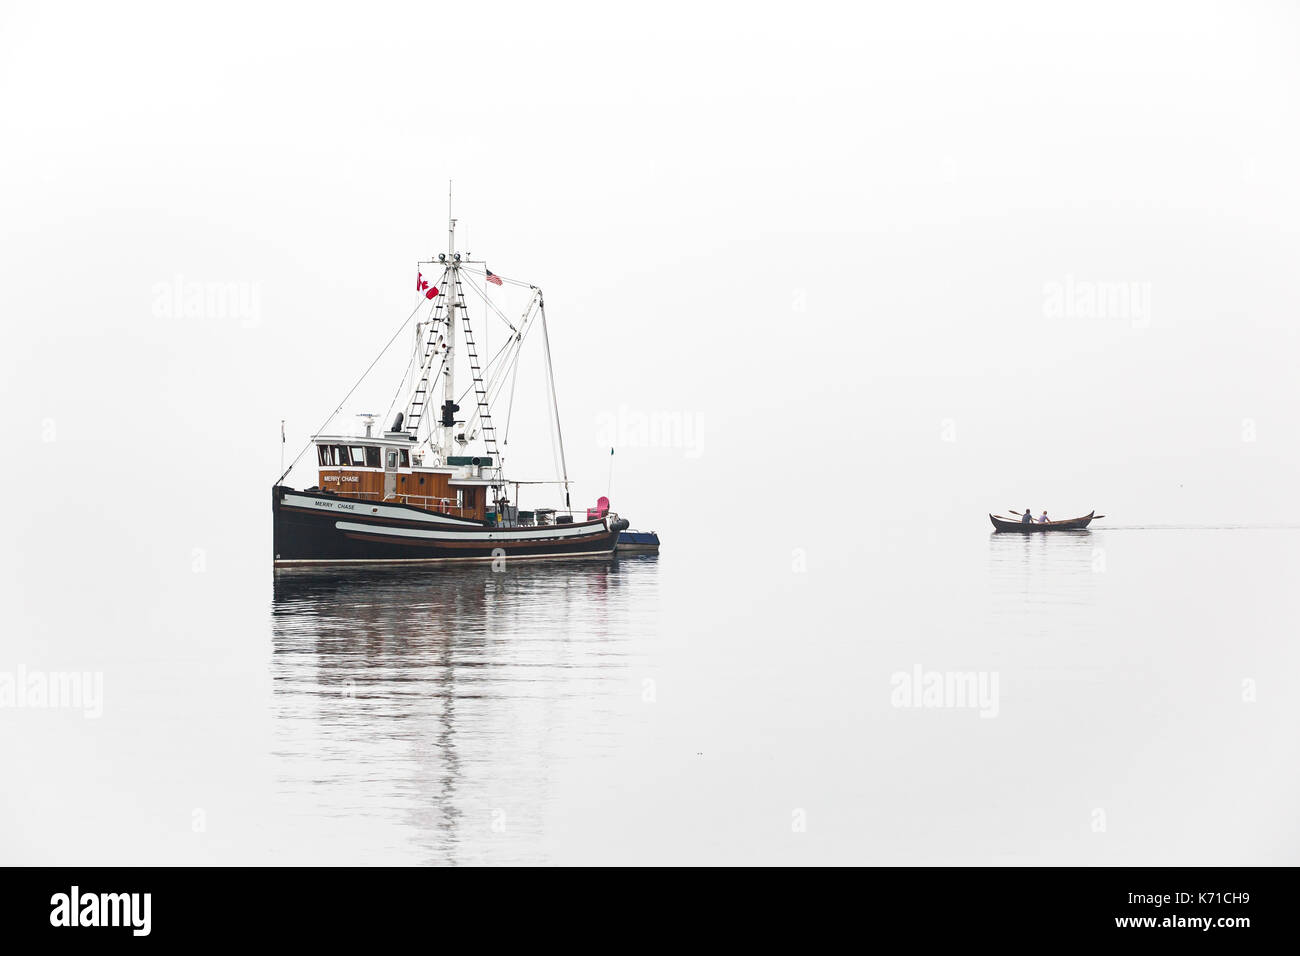 Fishing boat near Port Townsend during Wooden Boat Show in fog with row boat. - Stock Image